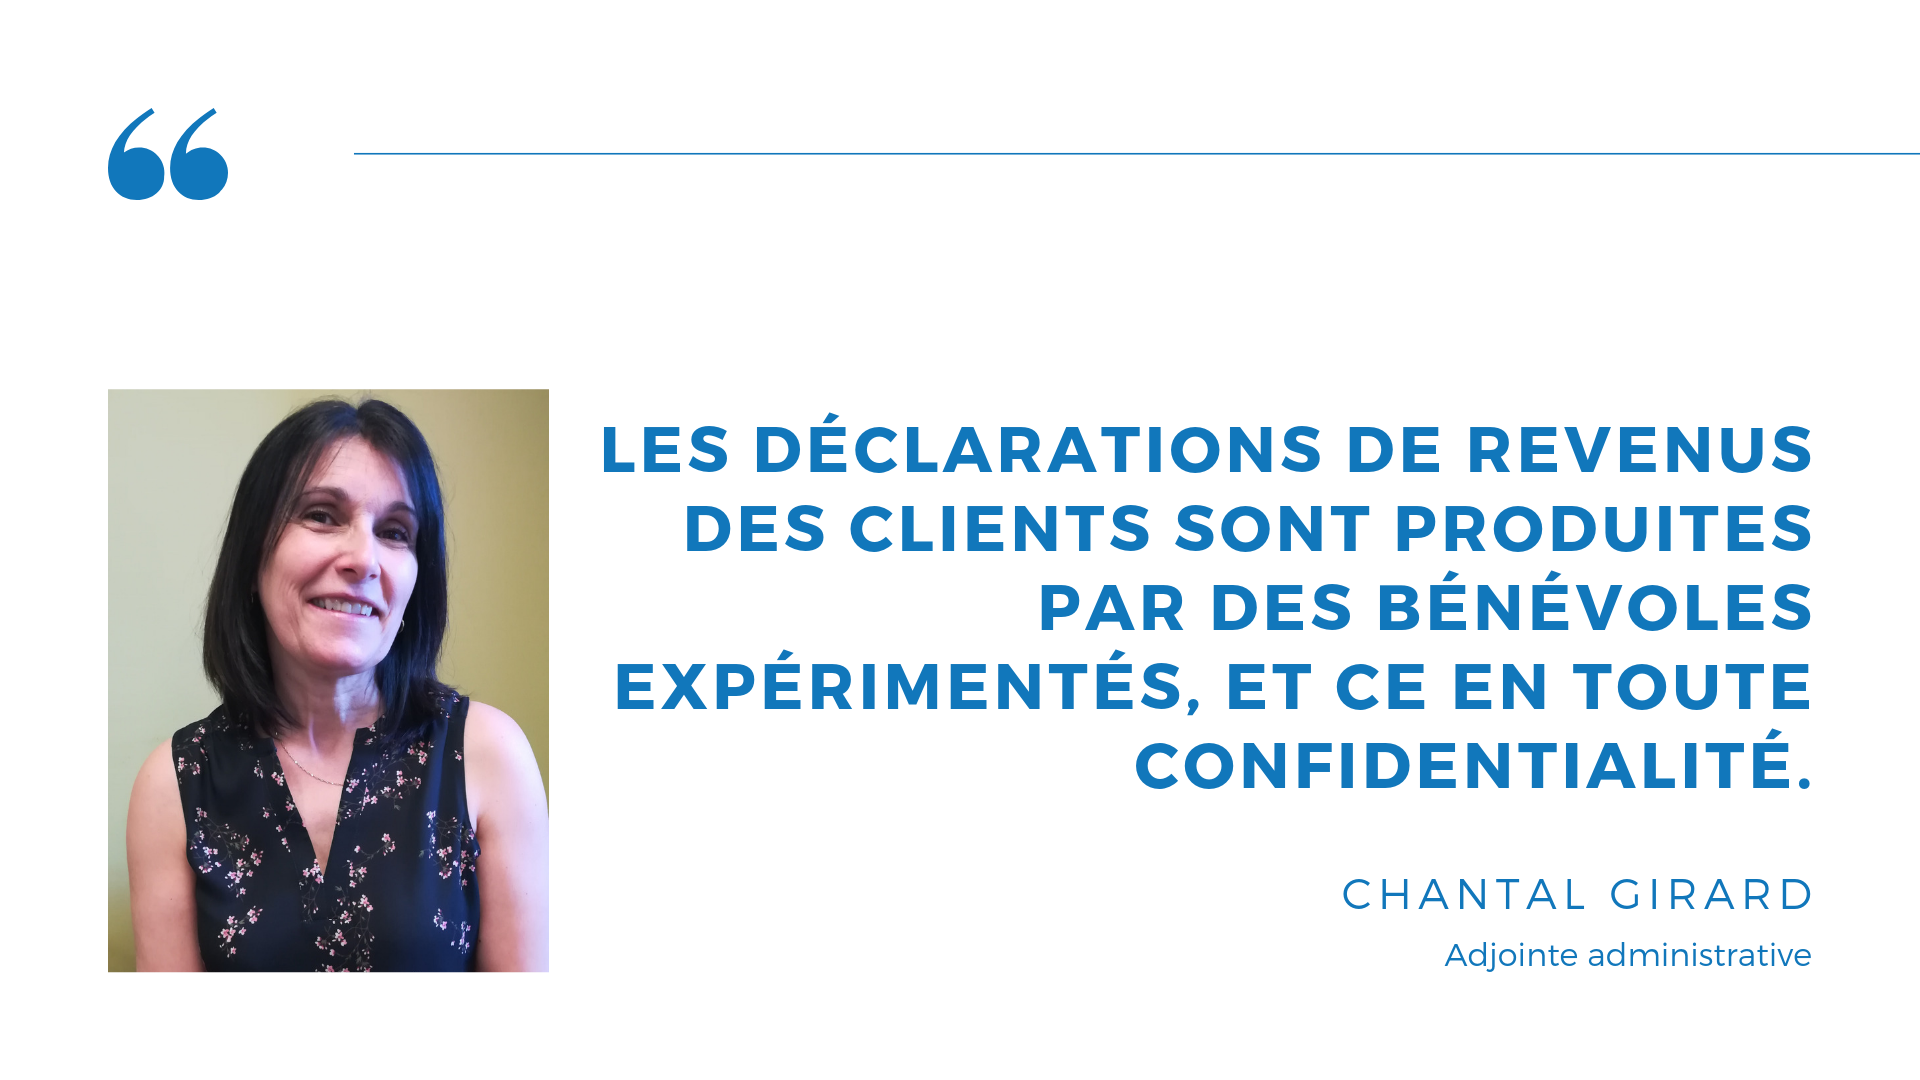 19 declaration revenu impot chantal girard benevole